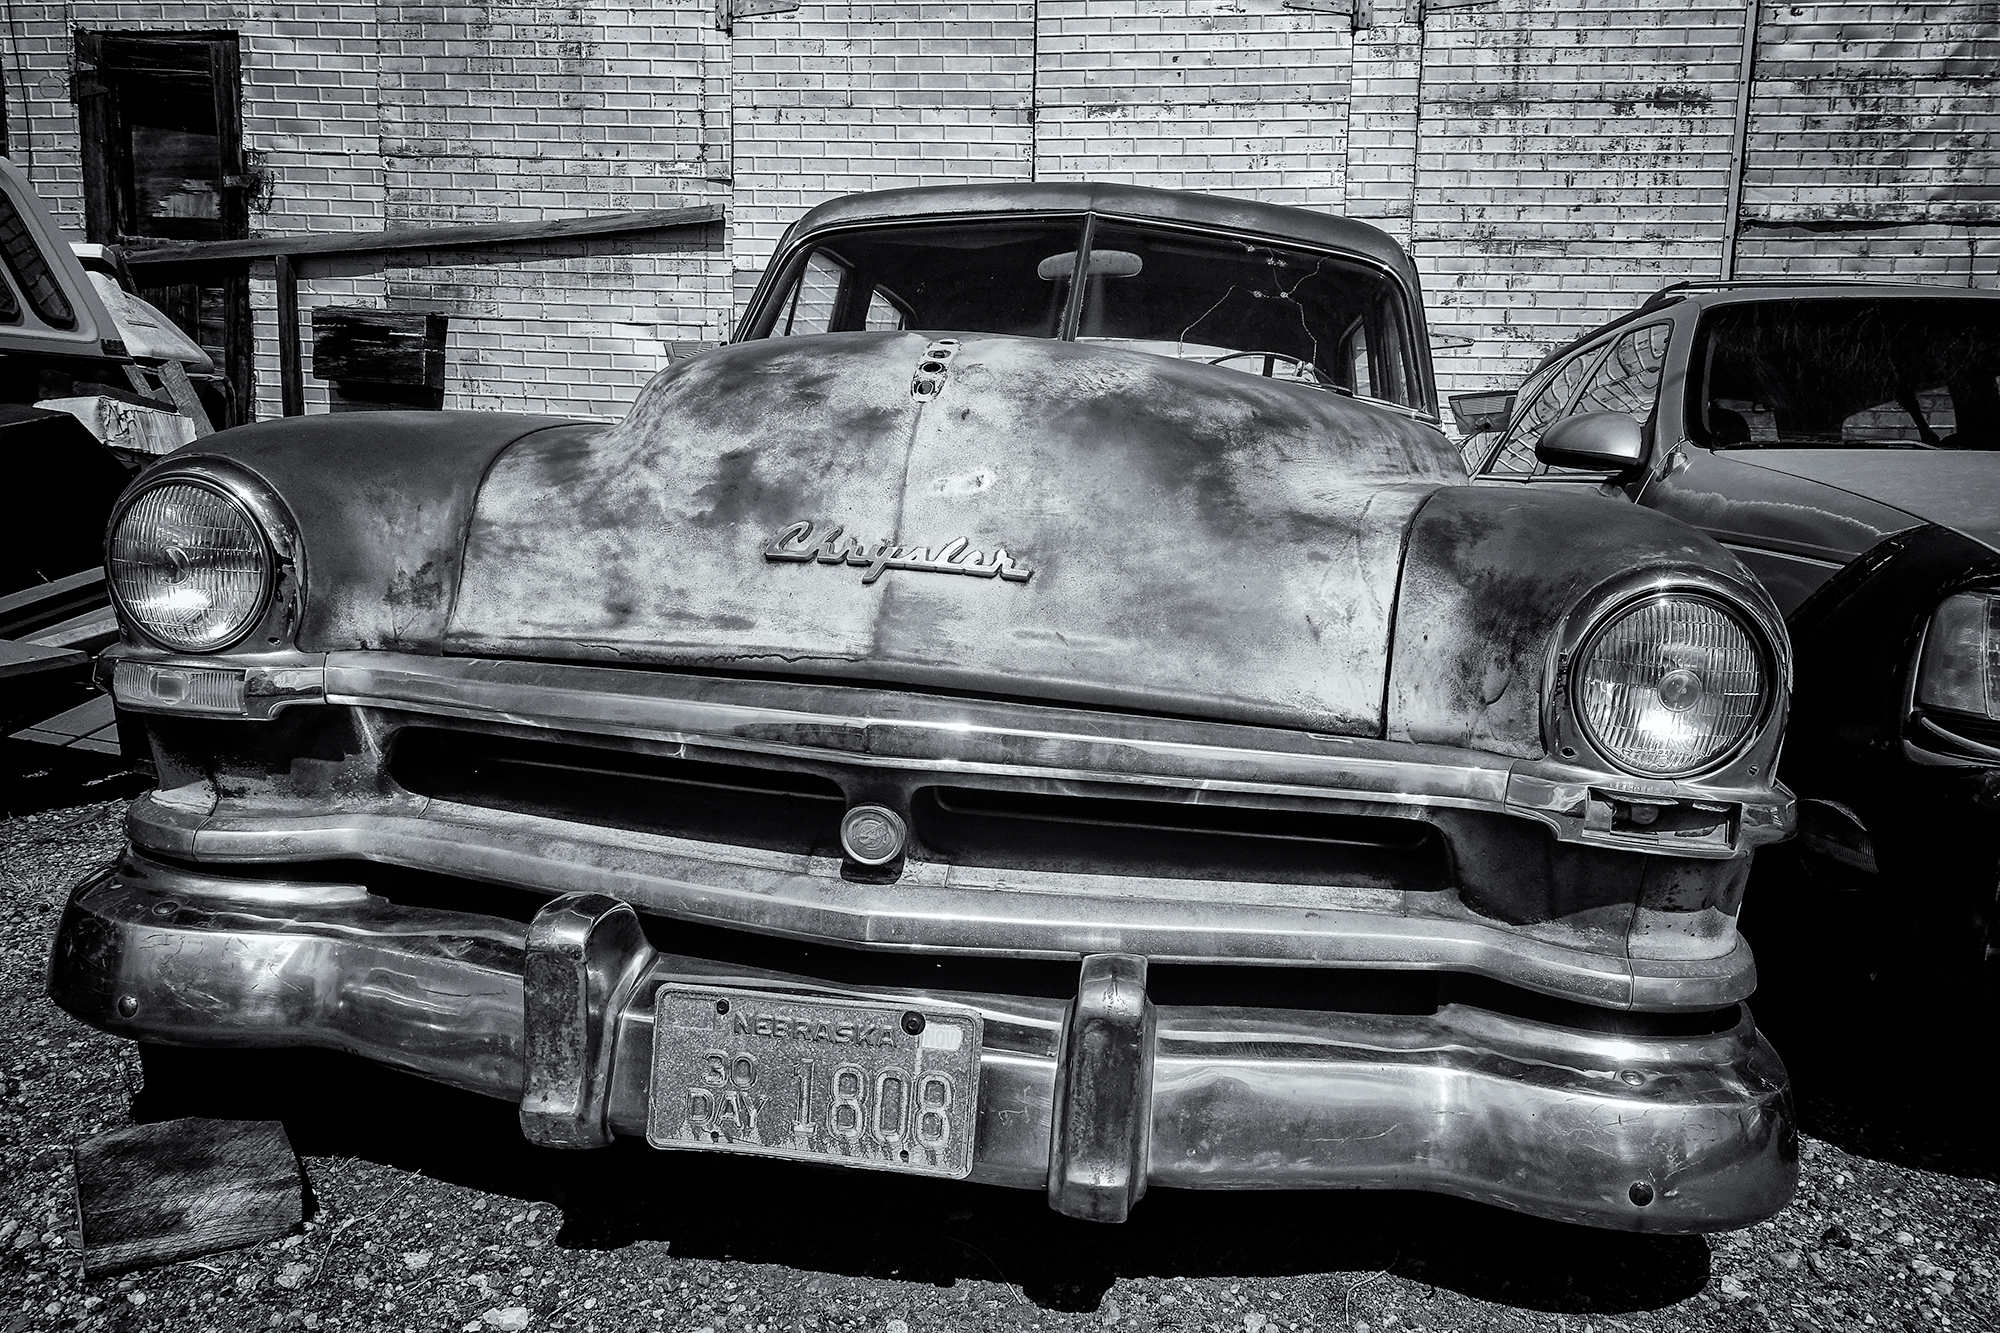 The Old Chrysler. Ft. Collins, Colorado, 2016